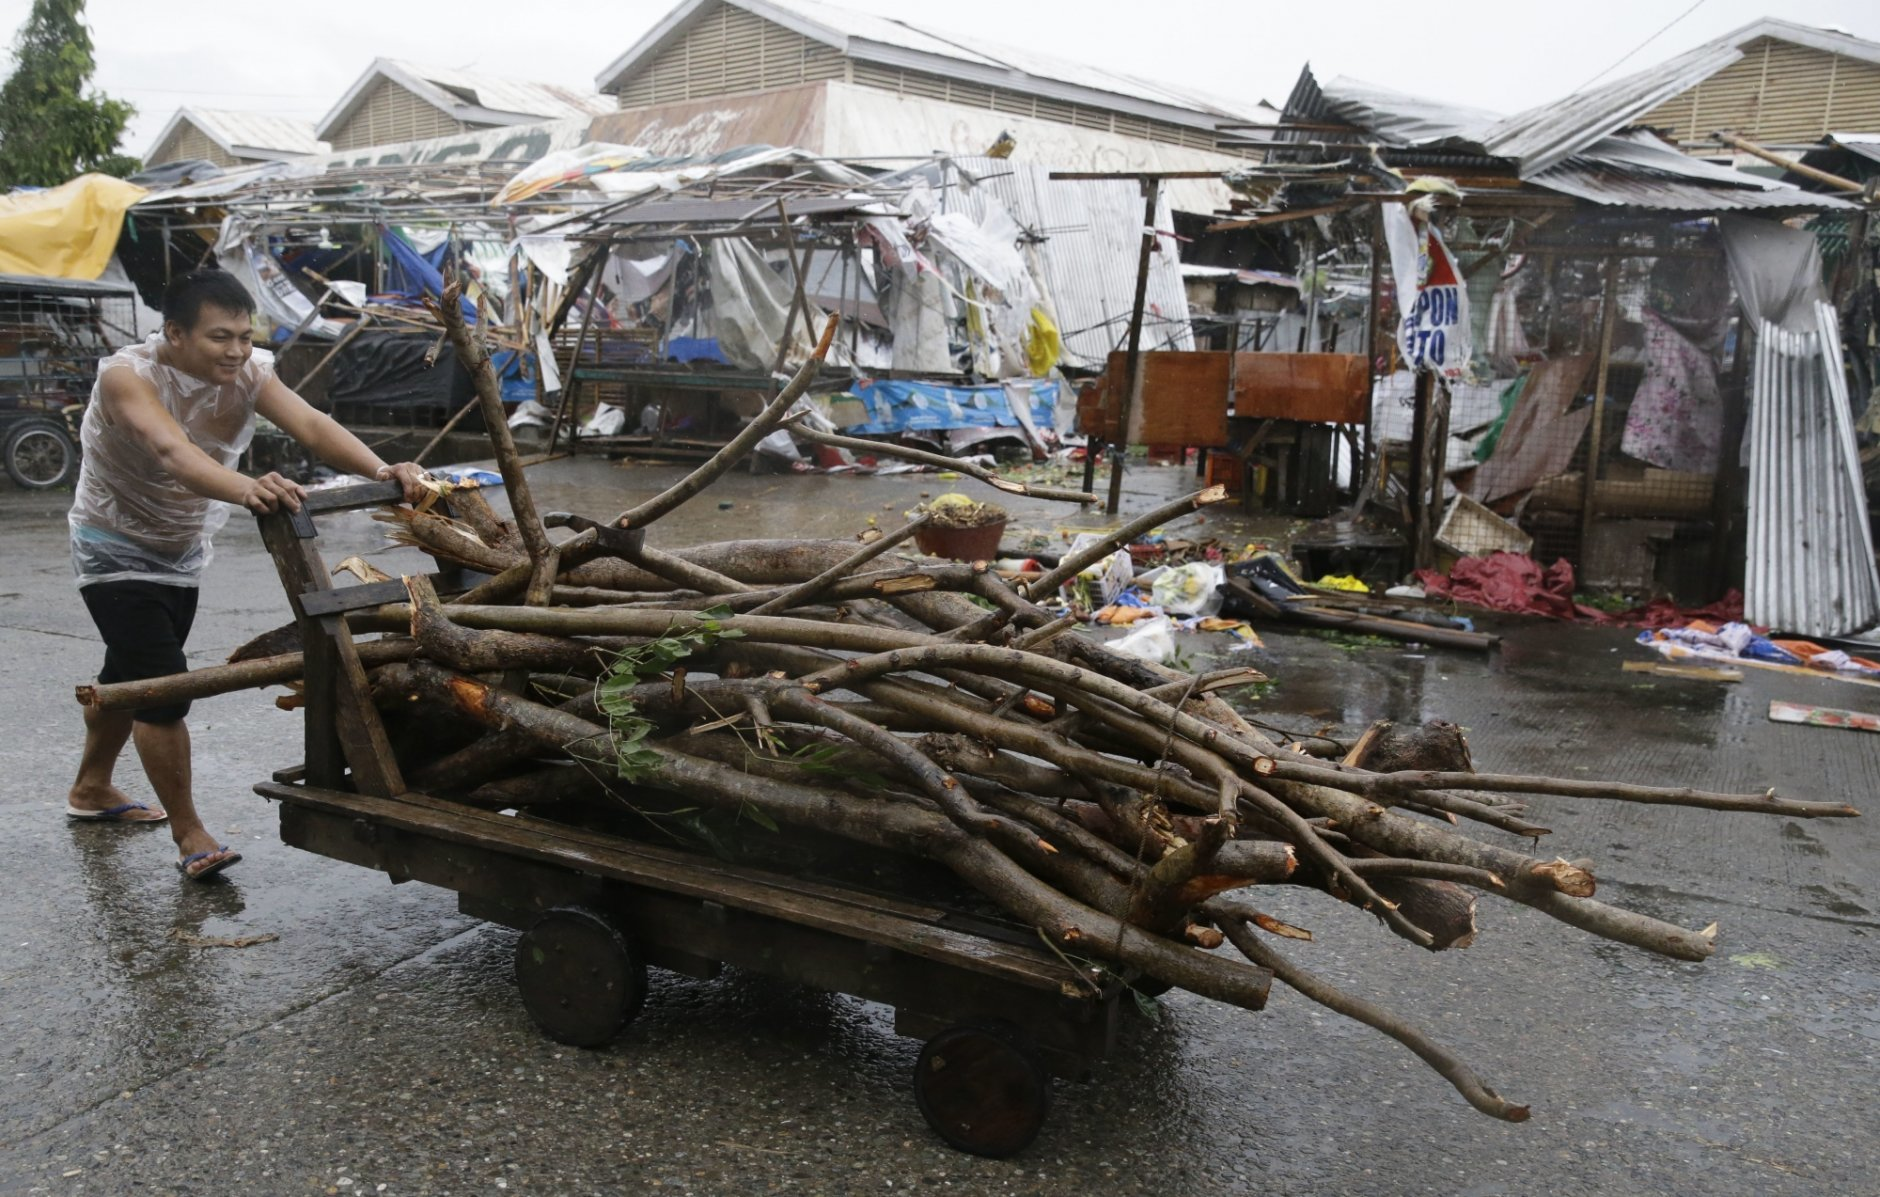 A resident pushes a cart full of wood as he passes market stalls destroyed by strong winds as Typhoon Mangkhut barreled across Tuguegrao city in Cagayan province, northeastern Philippines on Saturday, Sept. 15, 2018. The typhoon slammed into the Philippines northeastern coast early Saturday, it's ferocious winds and blinding rain ripping off tin roof sheets and knocking out power, and plowed through the agricultural region at the start of the onslaught. (AP Photo/Aaron Favila)